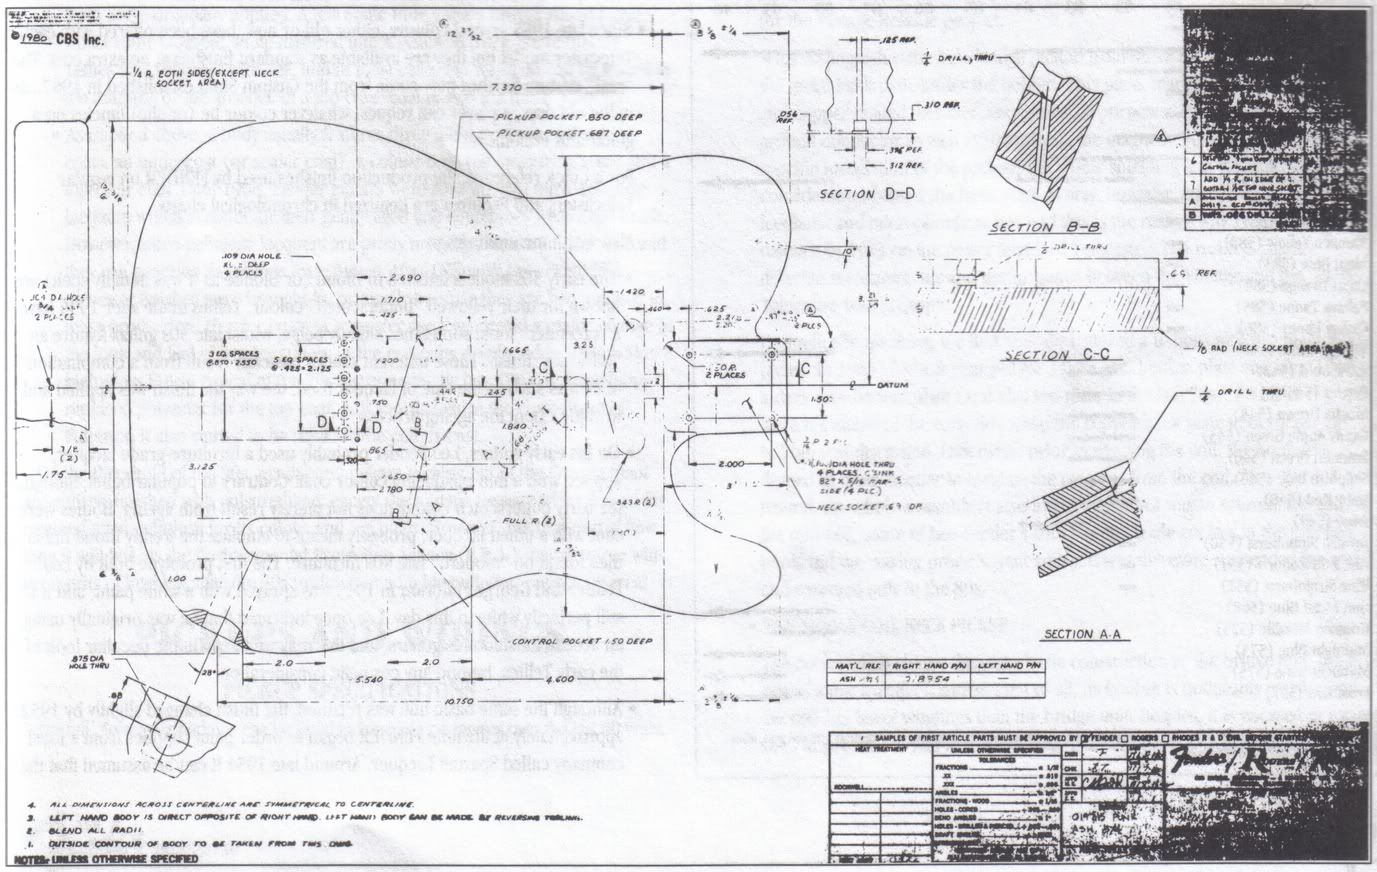 p bass body dimensions 1997 f150 fuse box diagram telecaster blue print 1980 cbs guitar misc pinterest